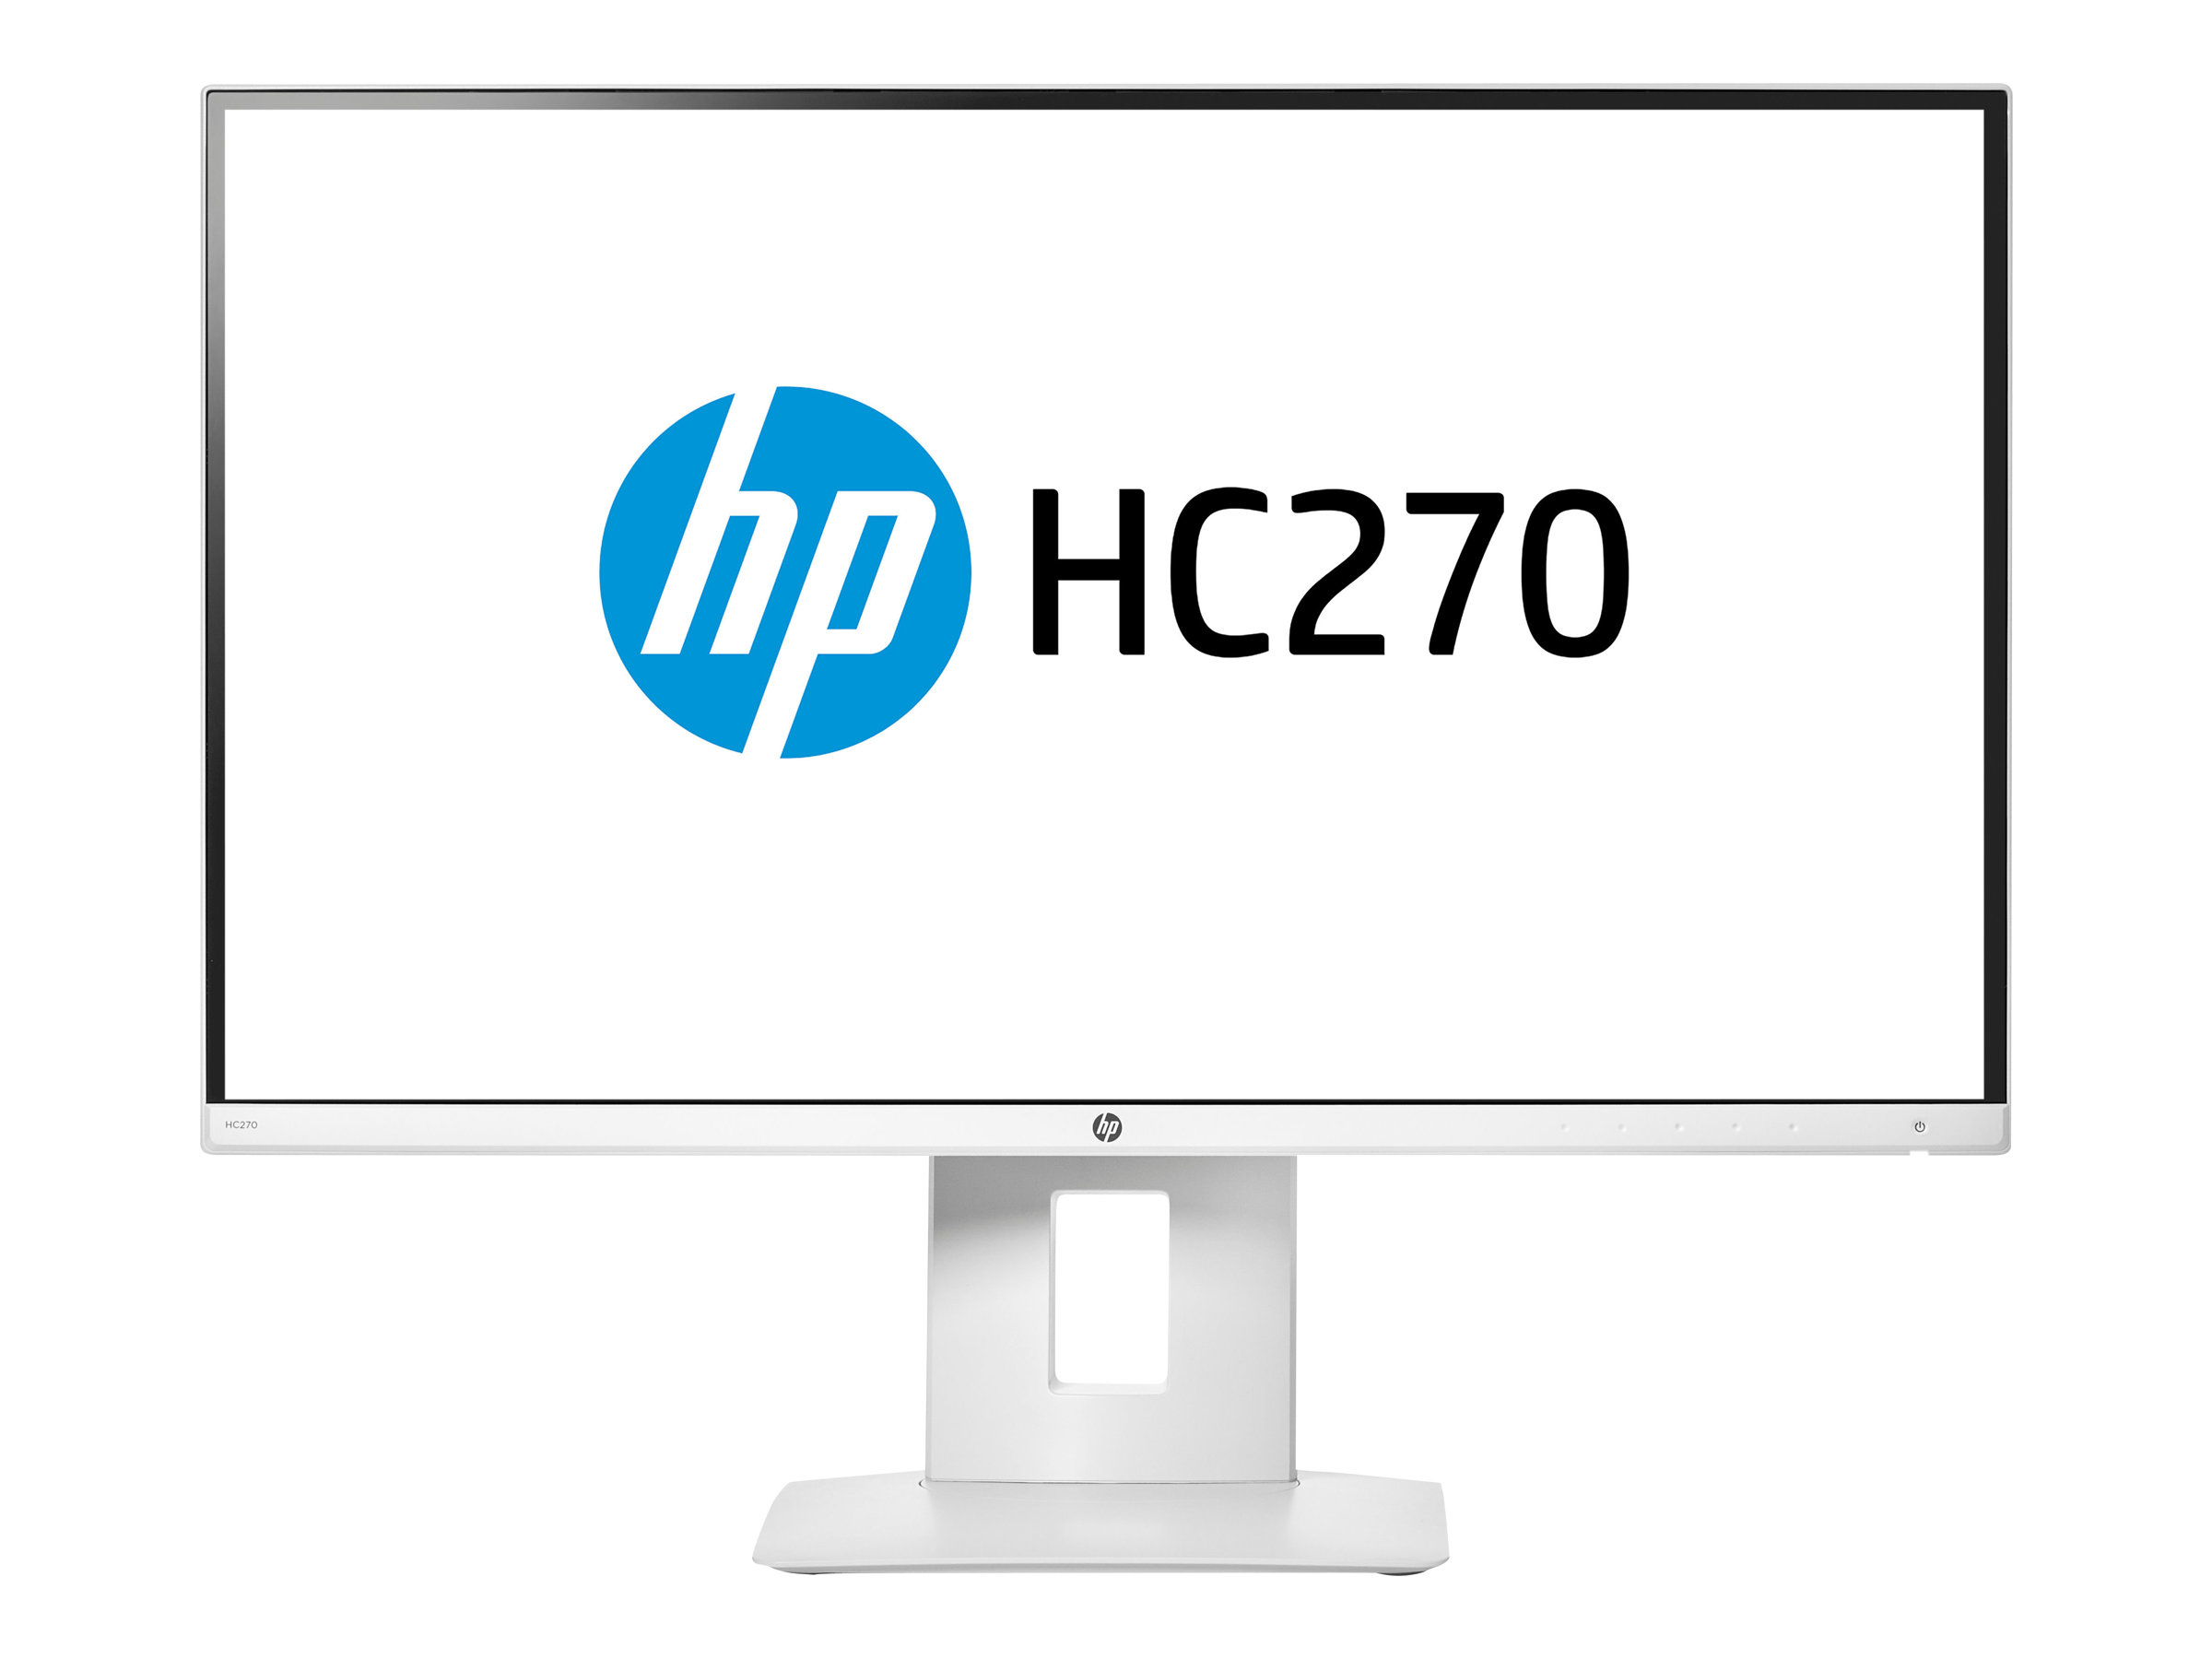 HP HC270 - Healthcare - LED-Monitor - 68.6 cm (27